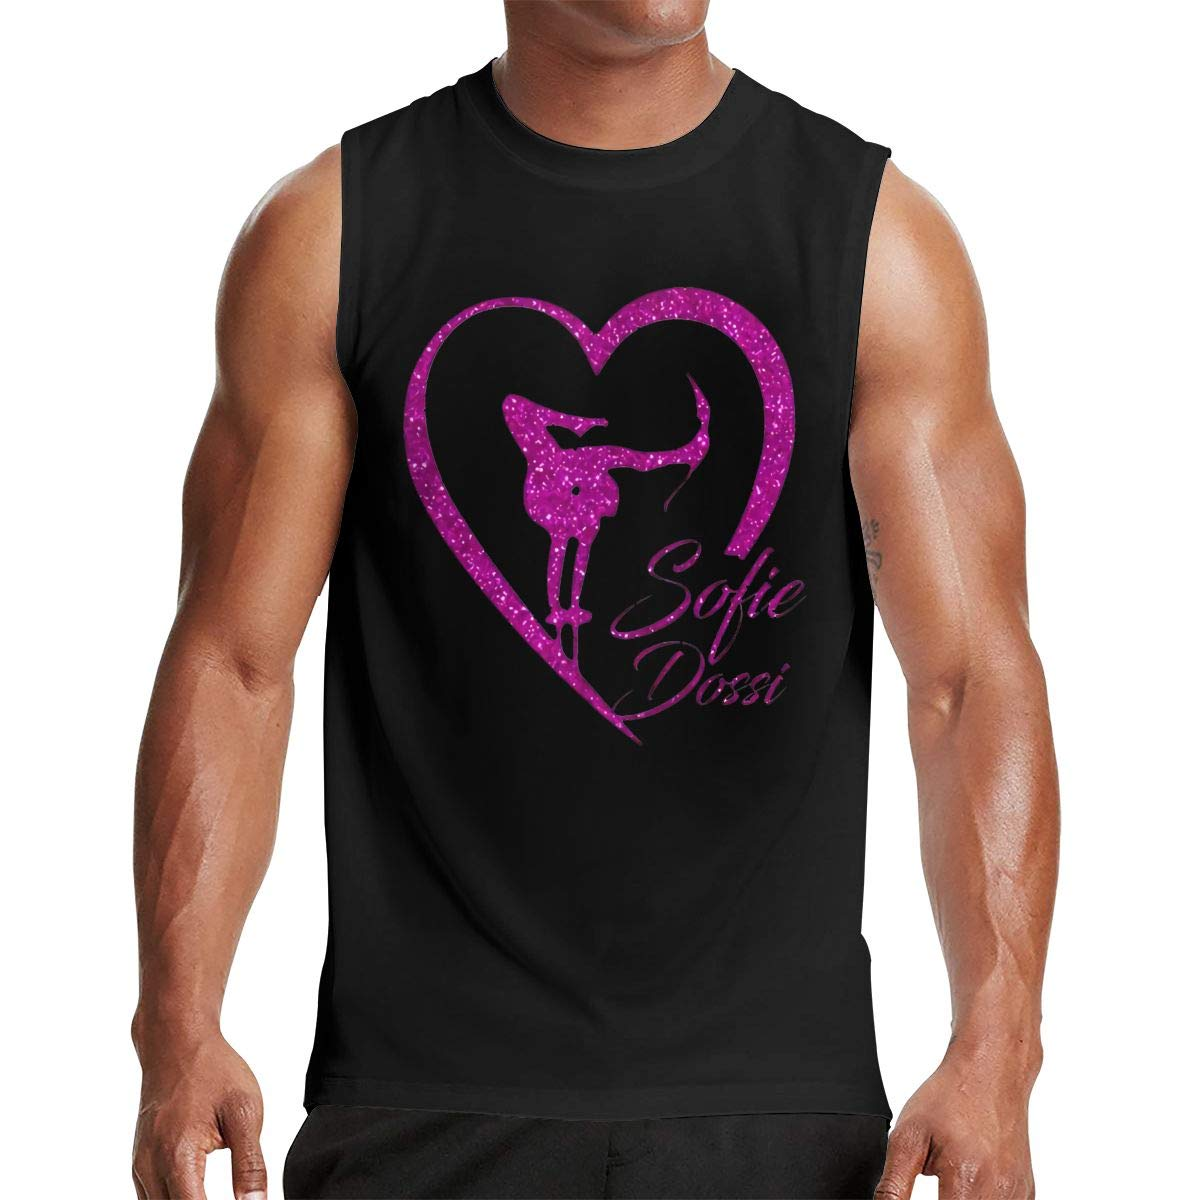 Thomlarryca Sofie Dossi Family 68 S Gym Muscle T Shirt Classic Athletic Sleeveless T S